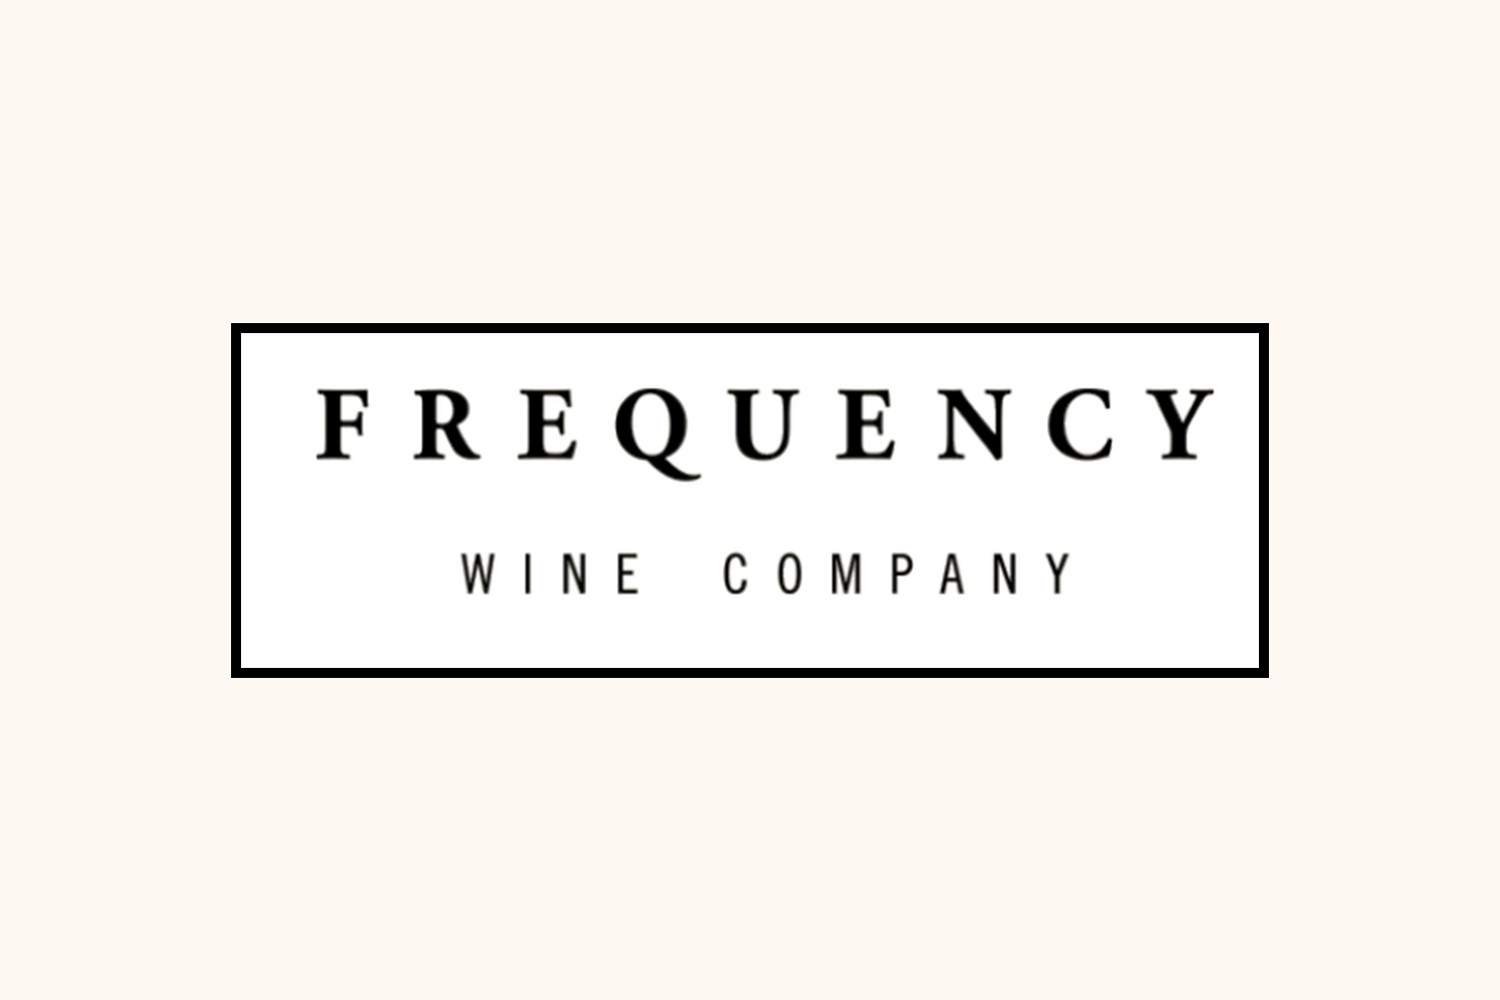 Frequency Wine Company